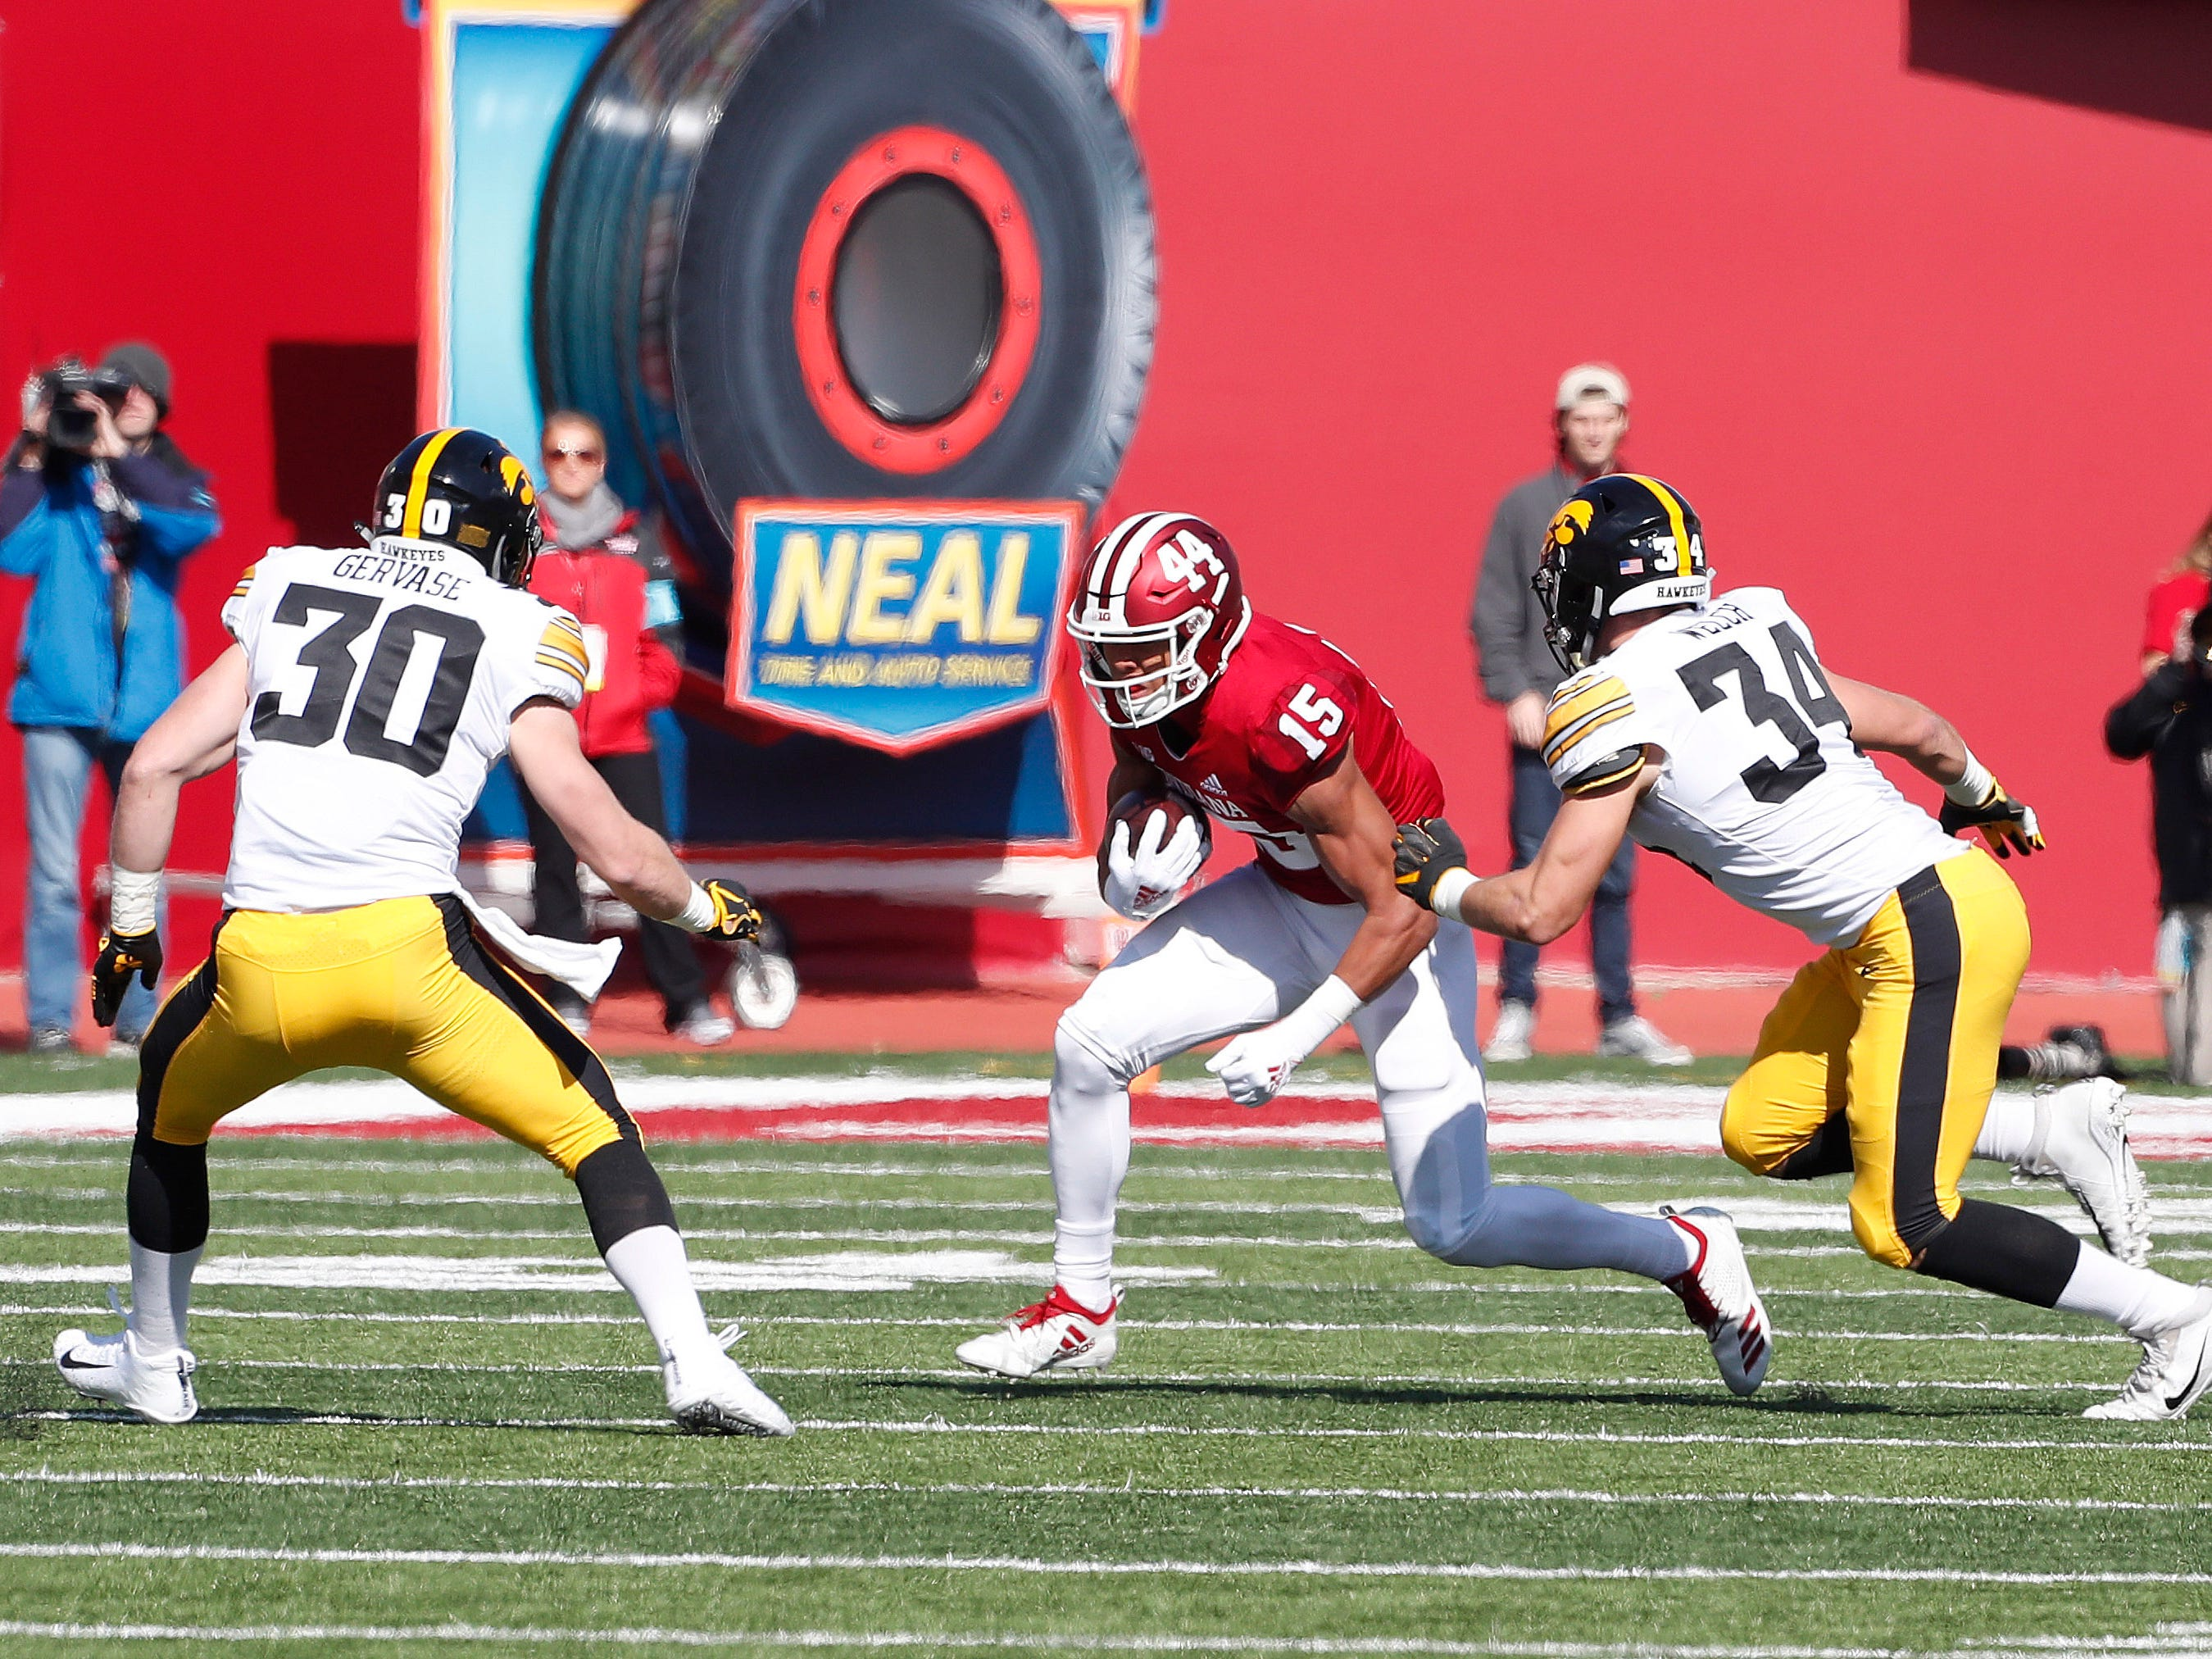 Indiana Hoosiers wide receiver Nick Westbrook (15) runs with the ball after making a catch against  Iowa Hawkeyes defensive back Jake Gervase (30) during the first quarter at Memorial Stadium.